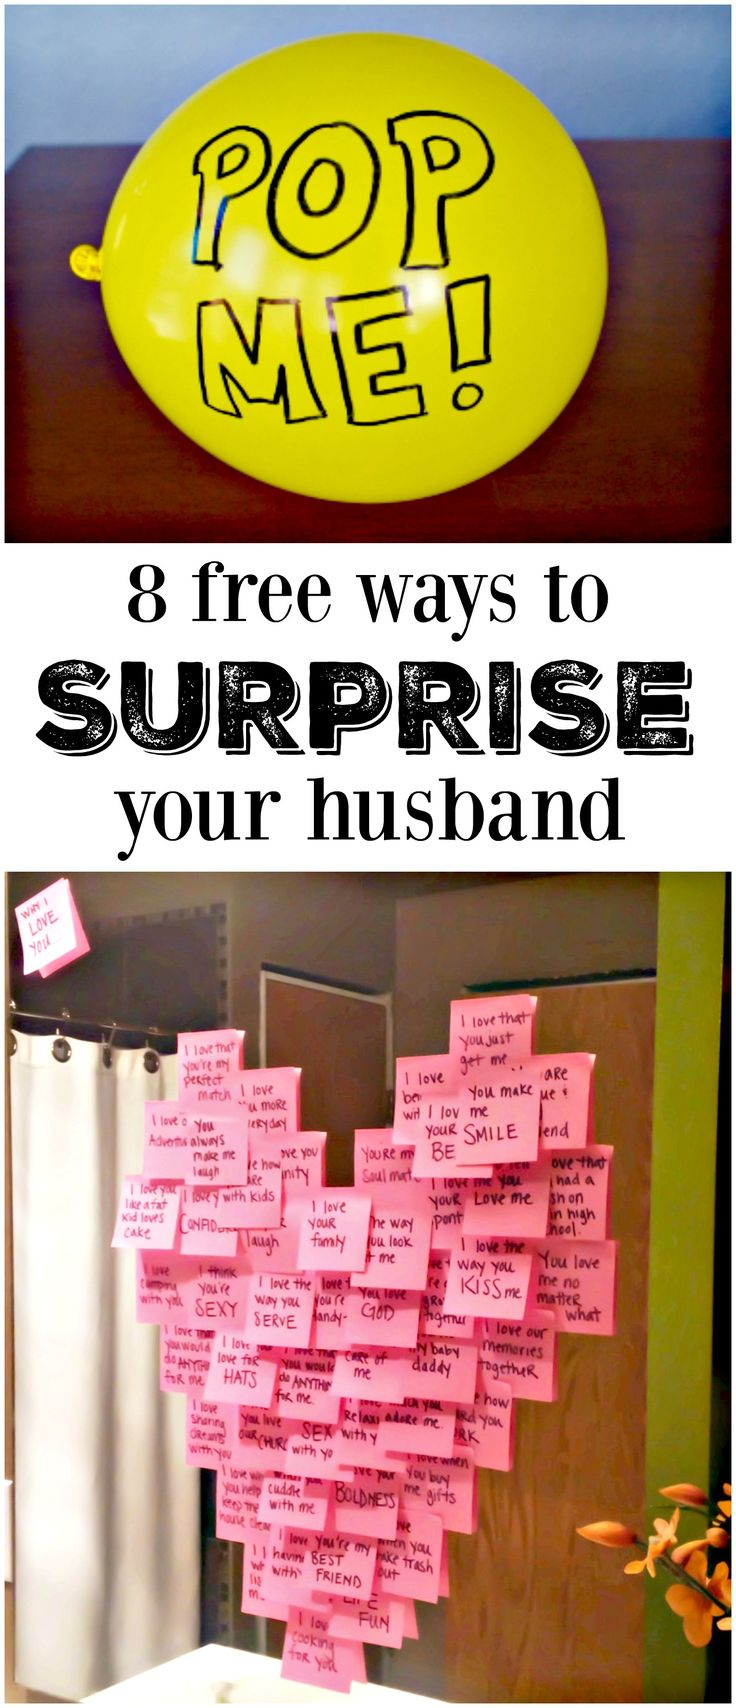 Best 25 husband gifts ideas on pinterest birthday ideas for 8 meaningful ways to make his day birthday surprise boyfriendboyfriend birthday ideas creativepregnant surprise husbandsuprise negle Choice Image